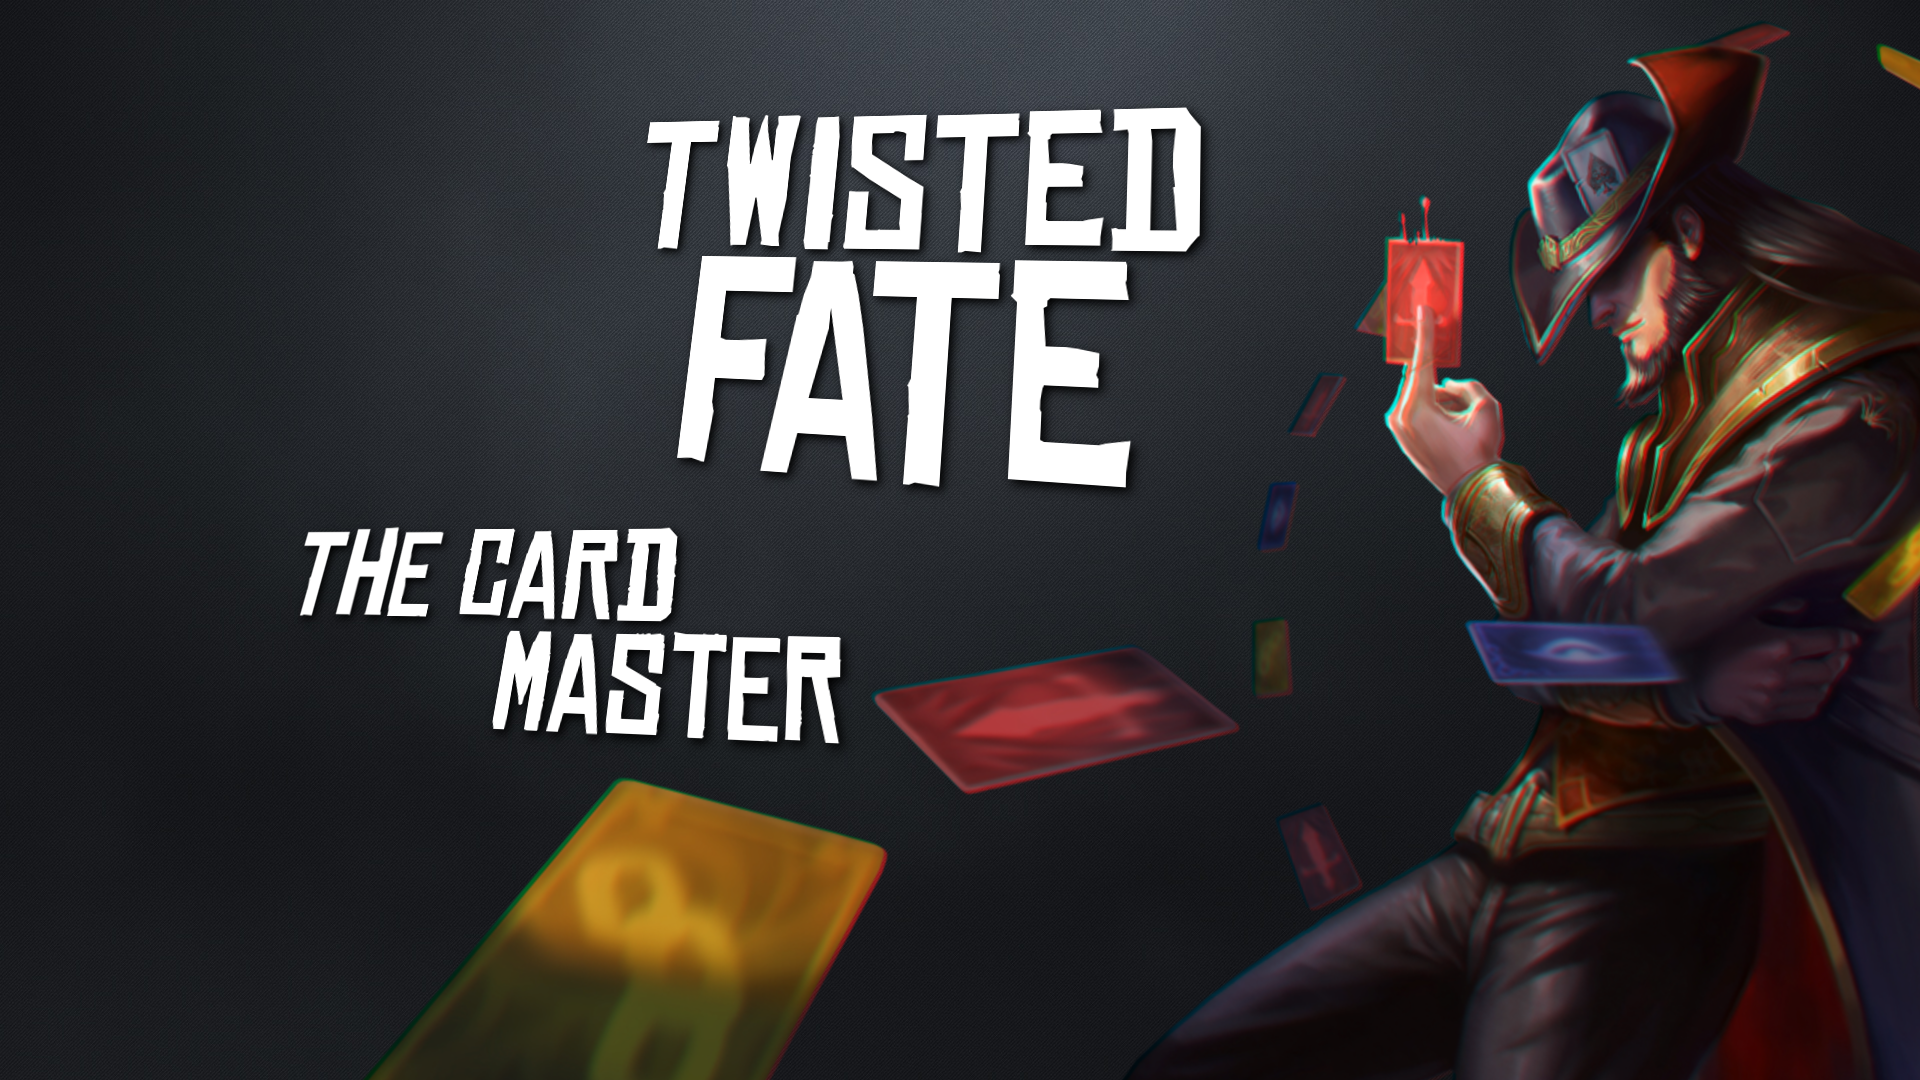 League of legends wallpaper twisted fate 1 by carryclown on of legends wallpaper twisted fate 1 by carryclown voltagebd Gallery